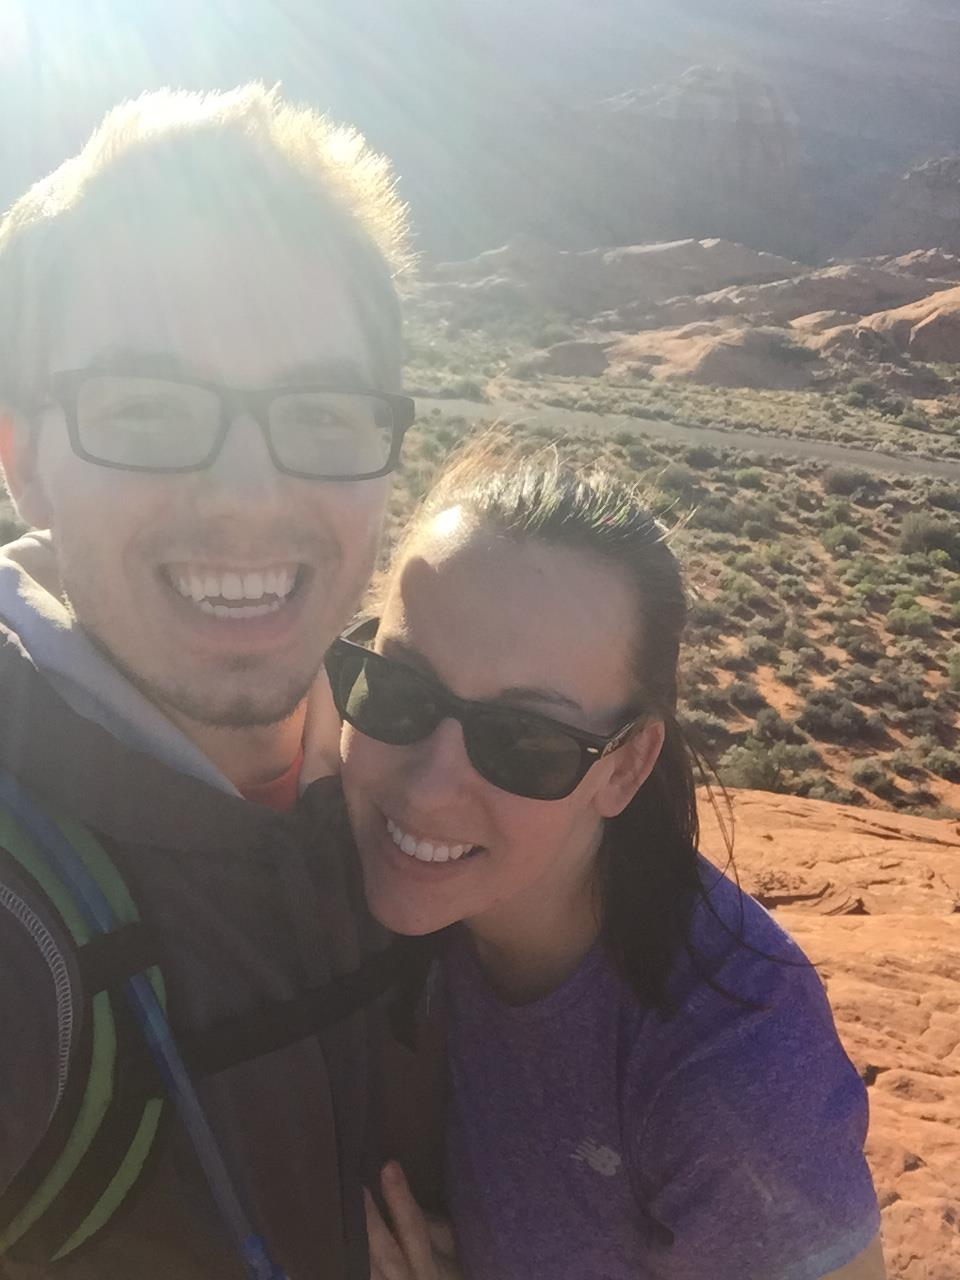 My husband Sam and I, hiking in Utah.